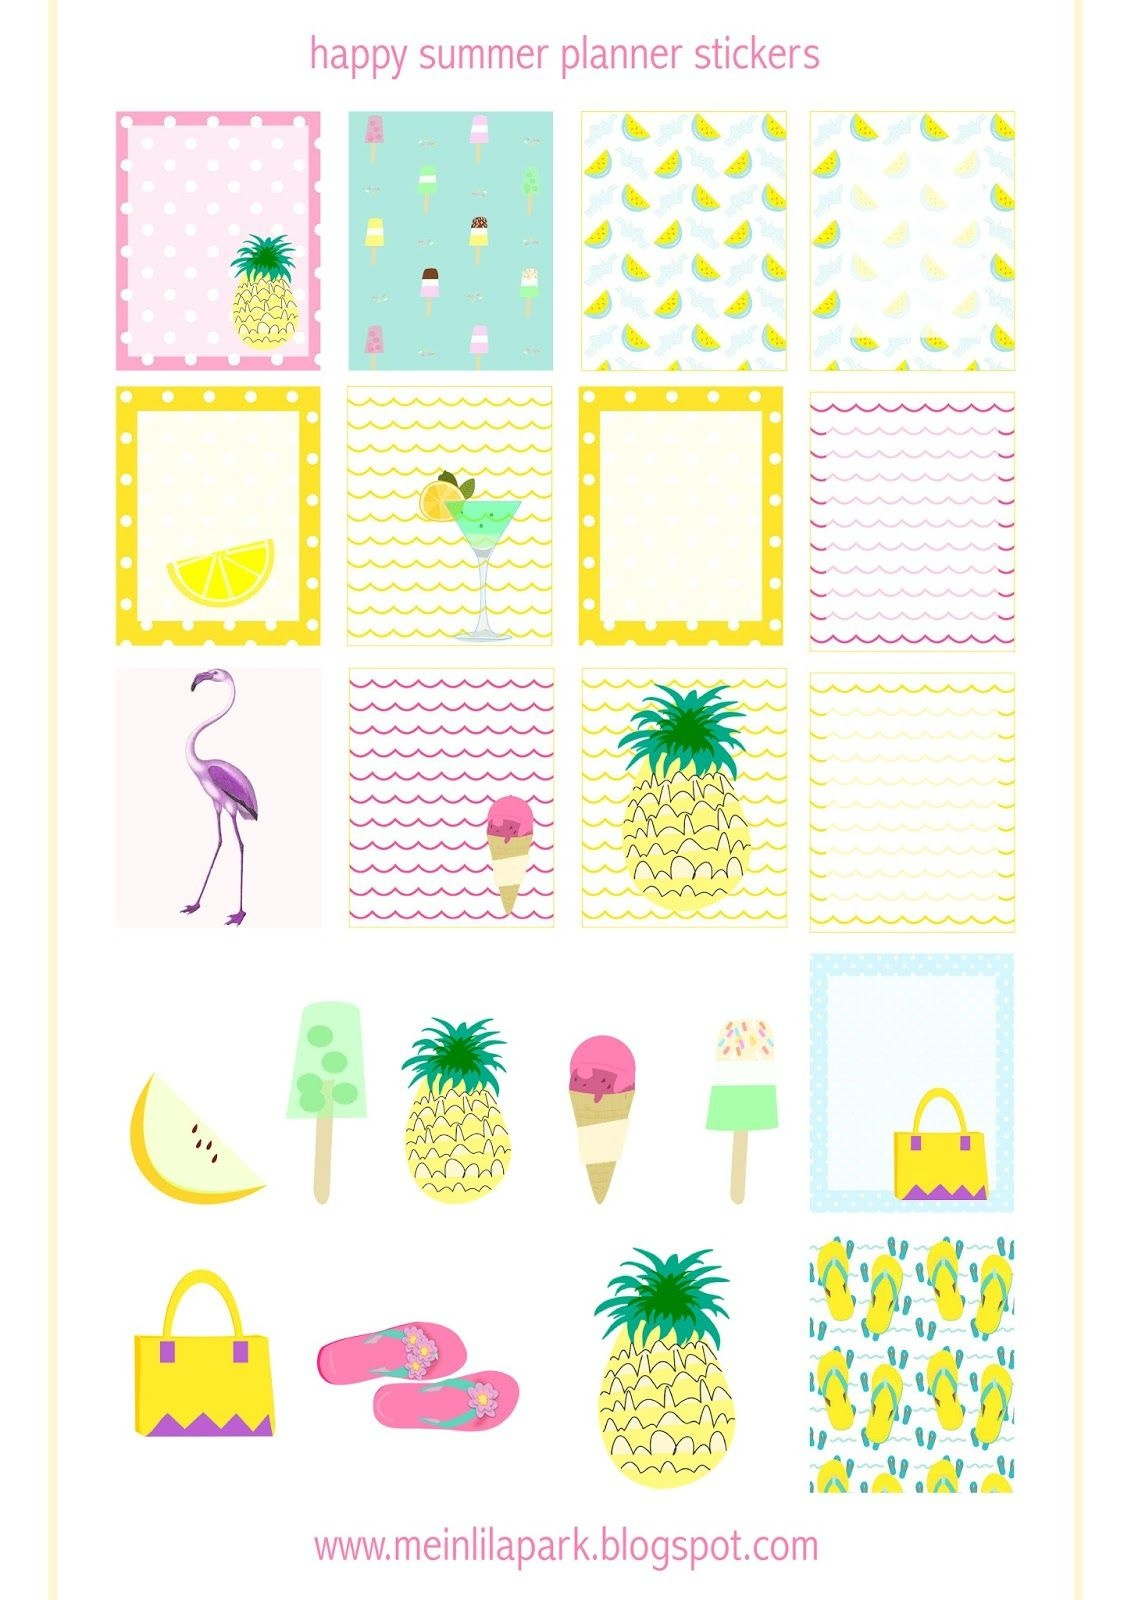 Free Printable Summer Planner Stickers - Ausdruckbare Etiketten - Free Printable Summer Pictures